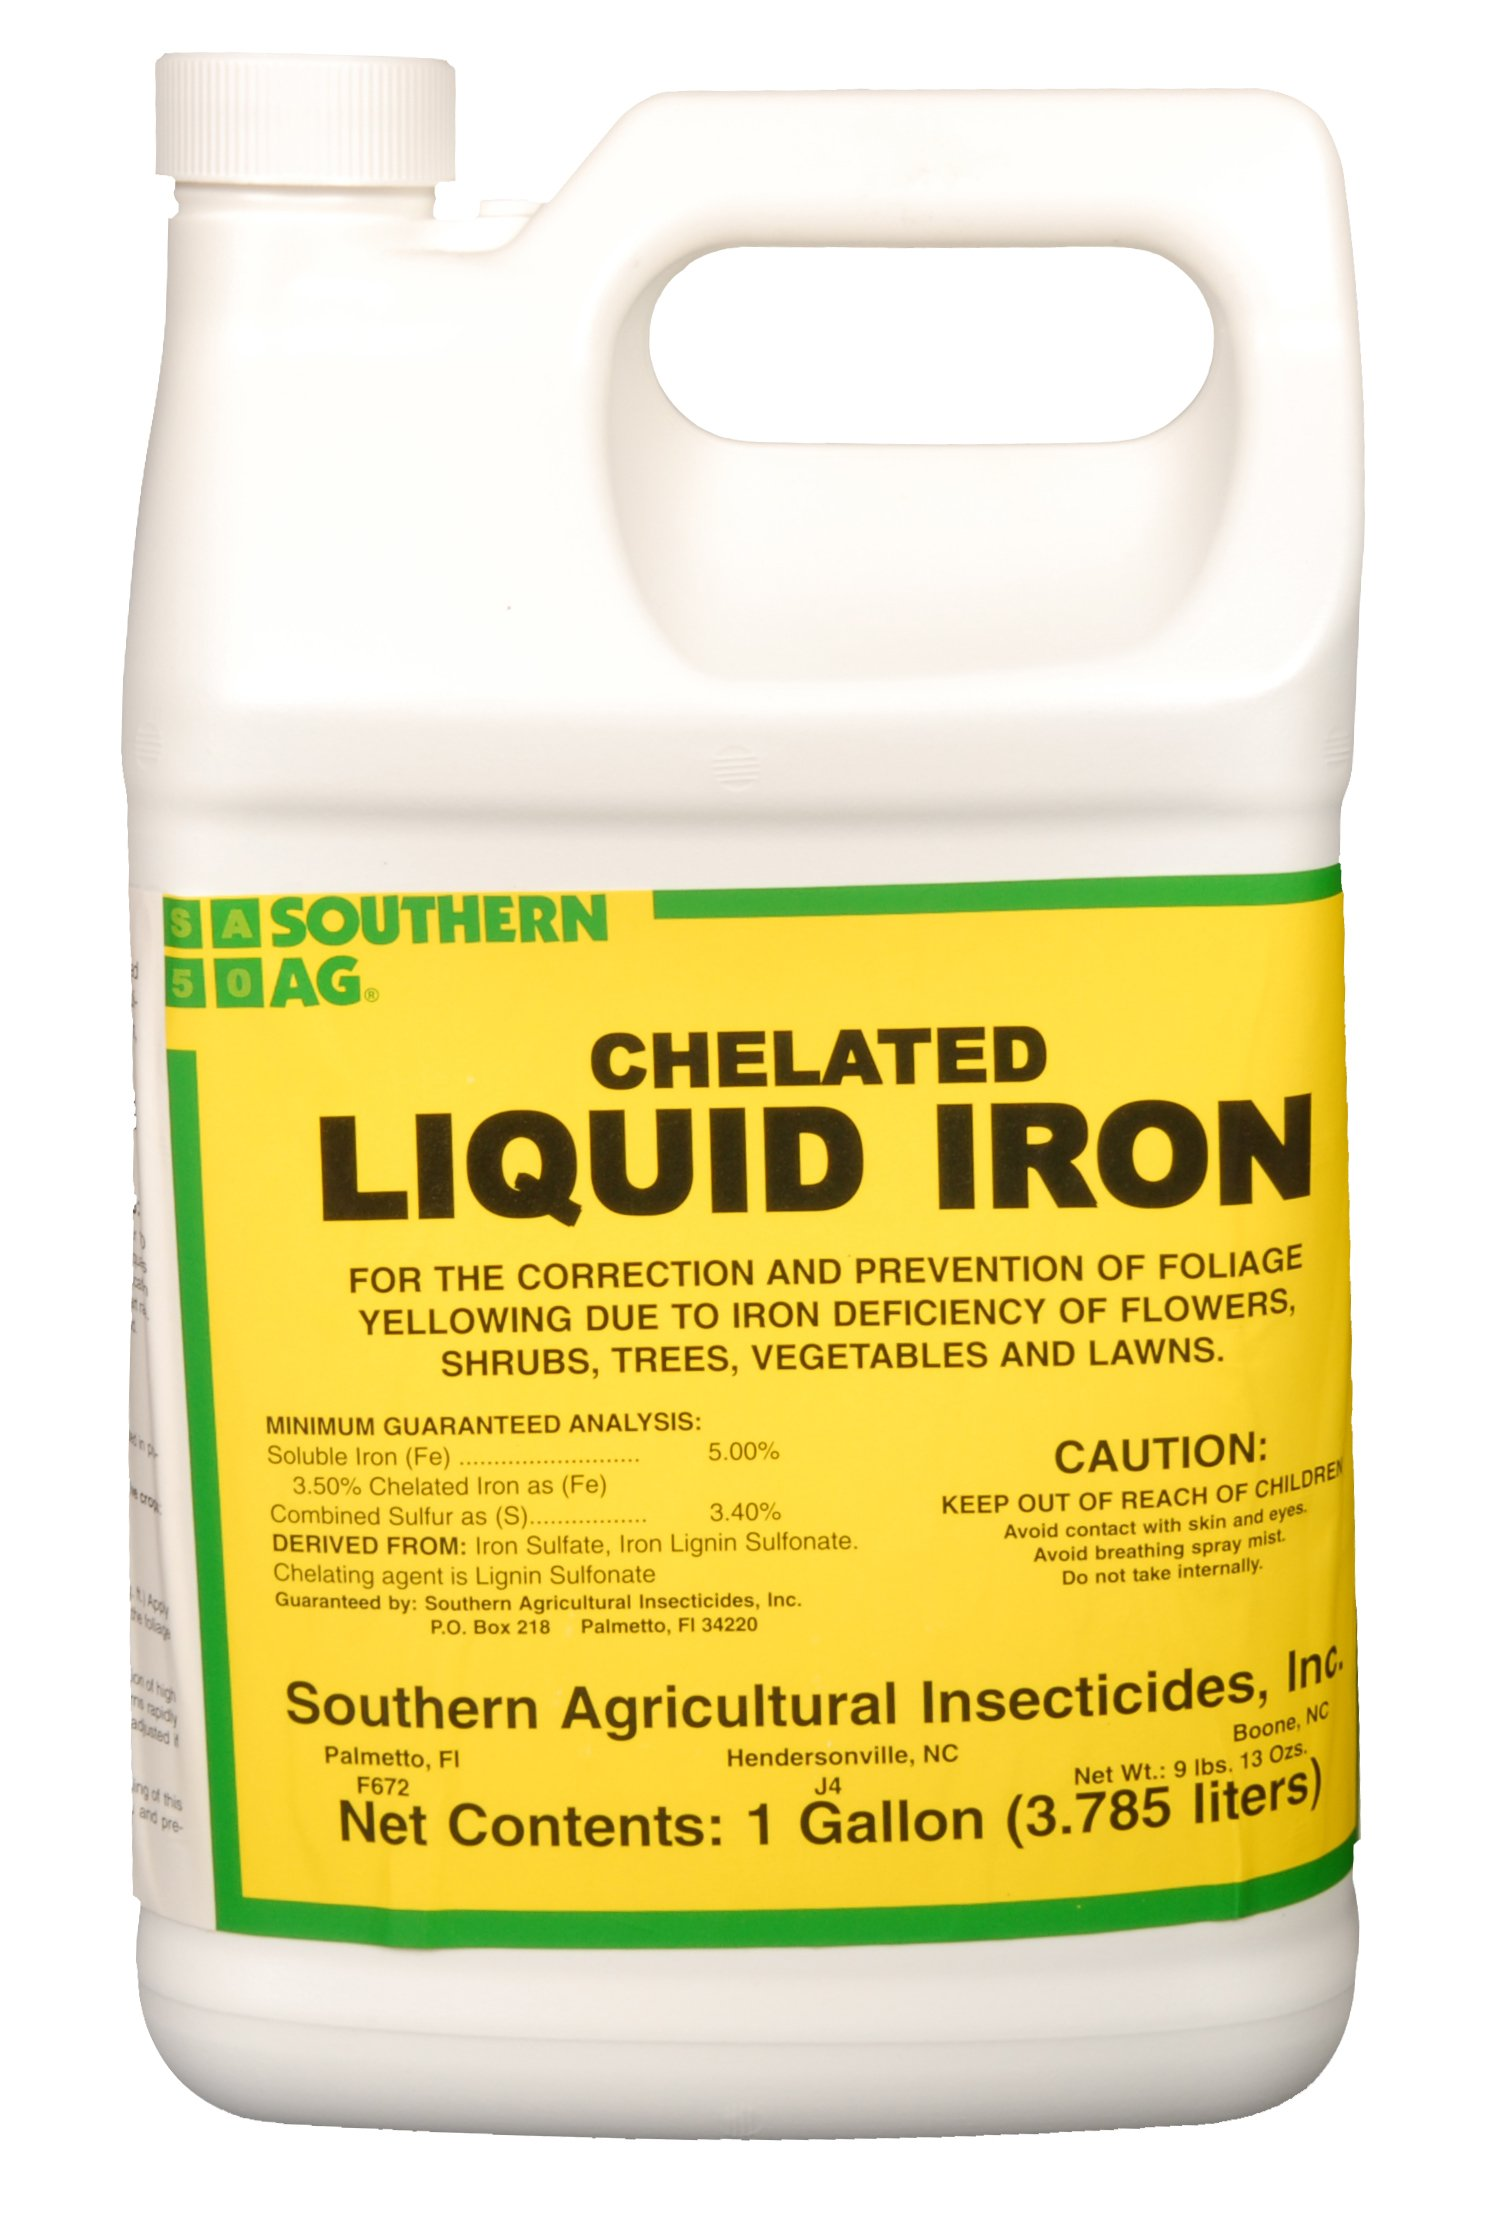 Southern Ag Chelated Liquid Iron, 128oz - 1 Gallon by Southern Ag